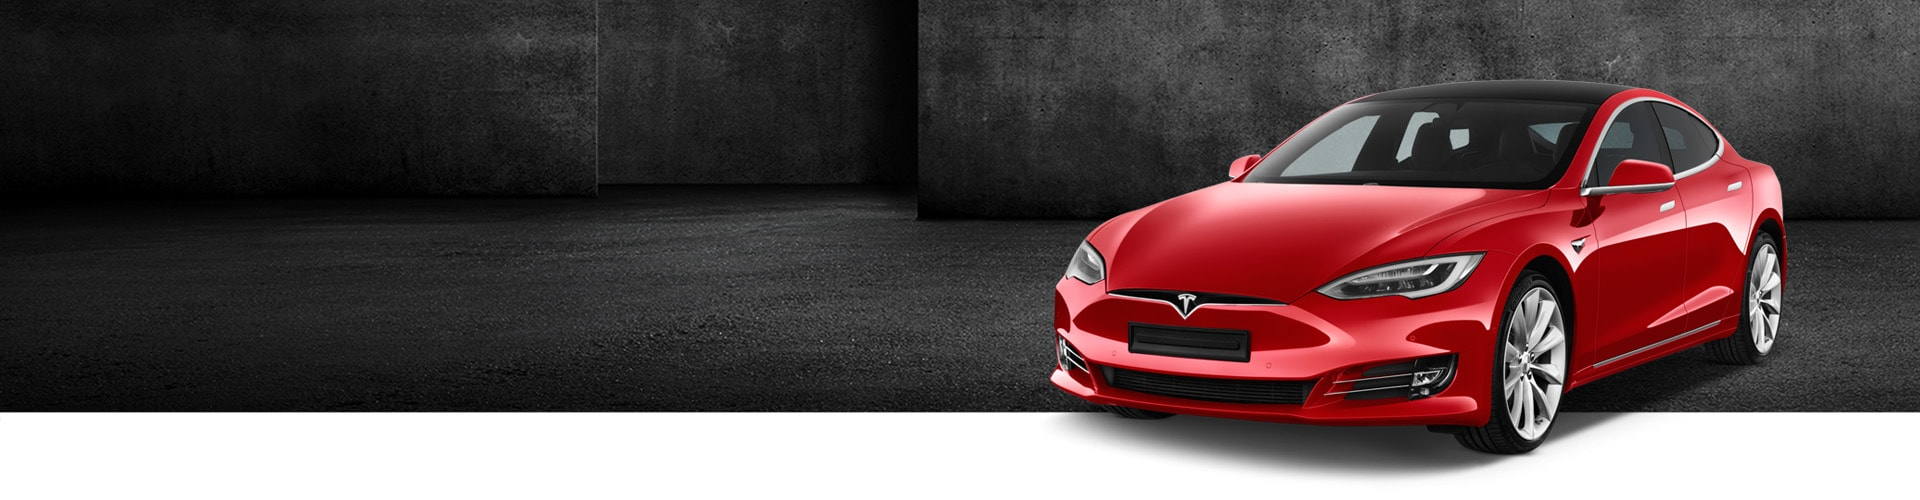 Tesla Careers Login >> Rent A Tesla Model S Reserve Online Enterprise Rent A Car